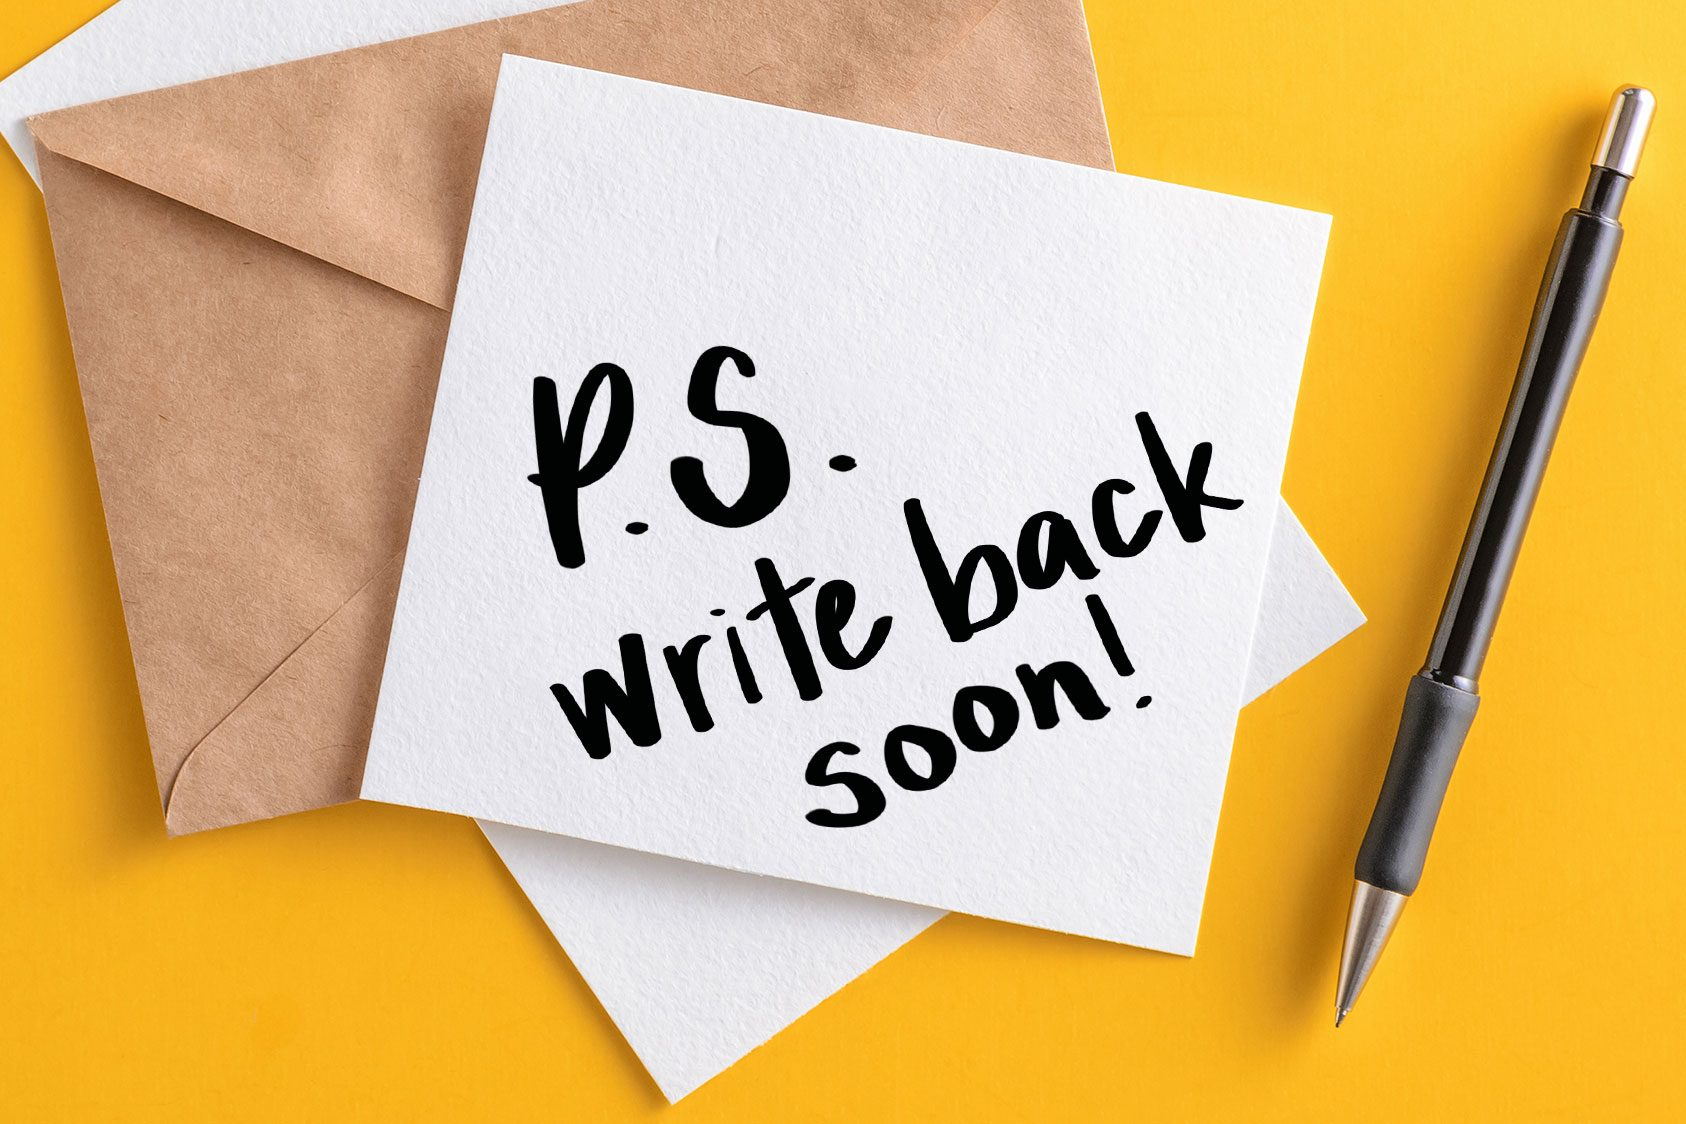 """""""P.S. write back soon"""" written on stationary; yellow background"""